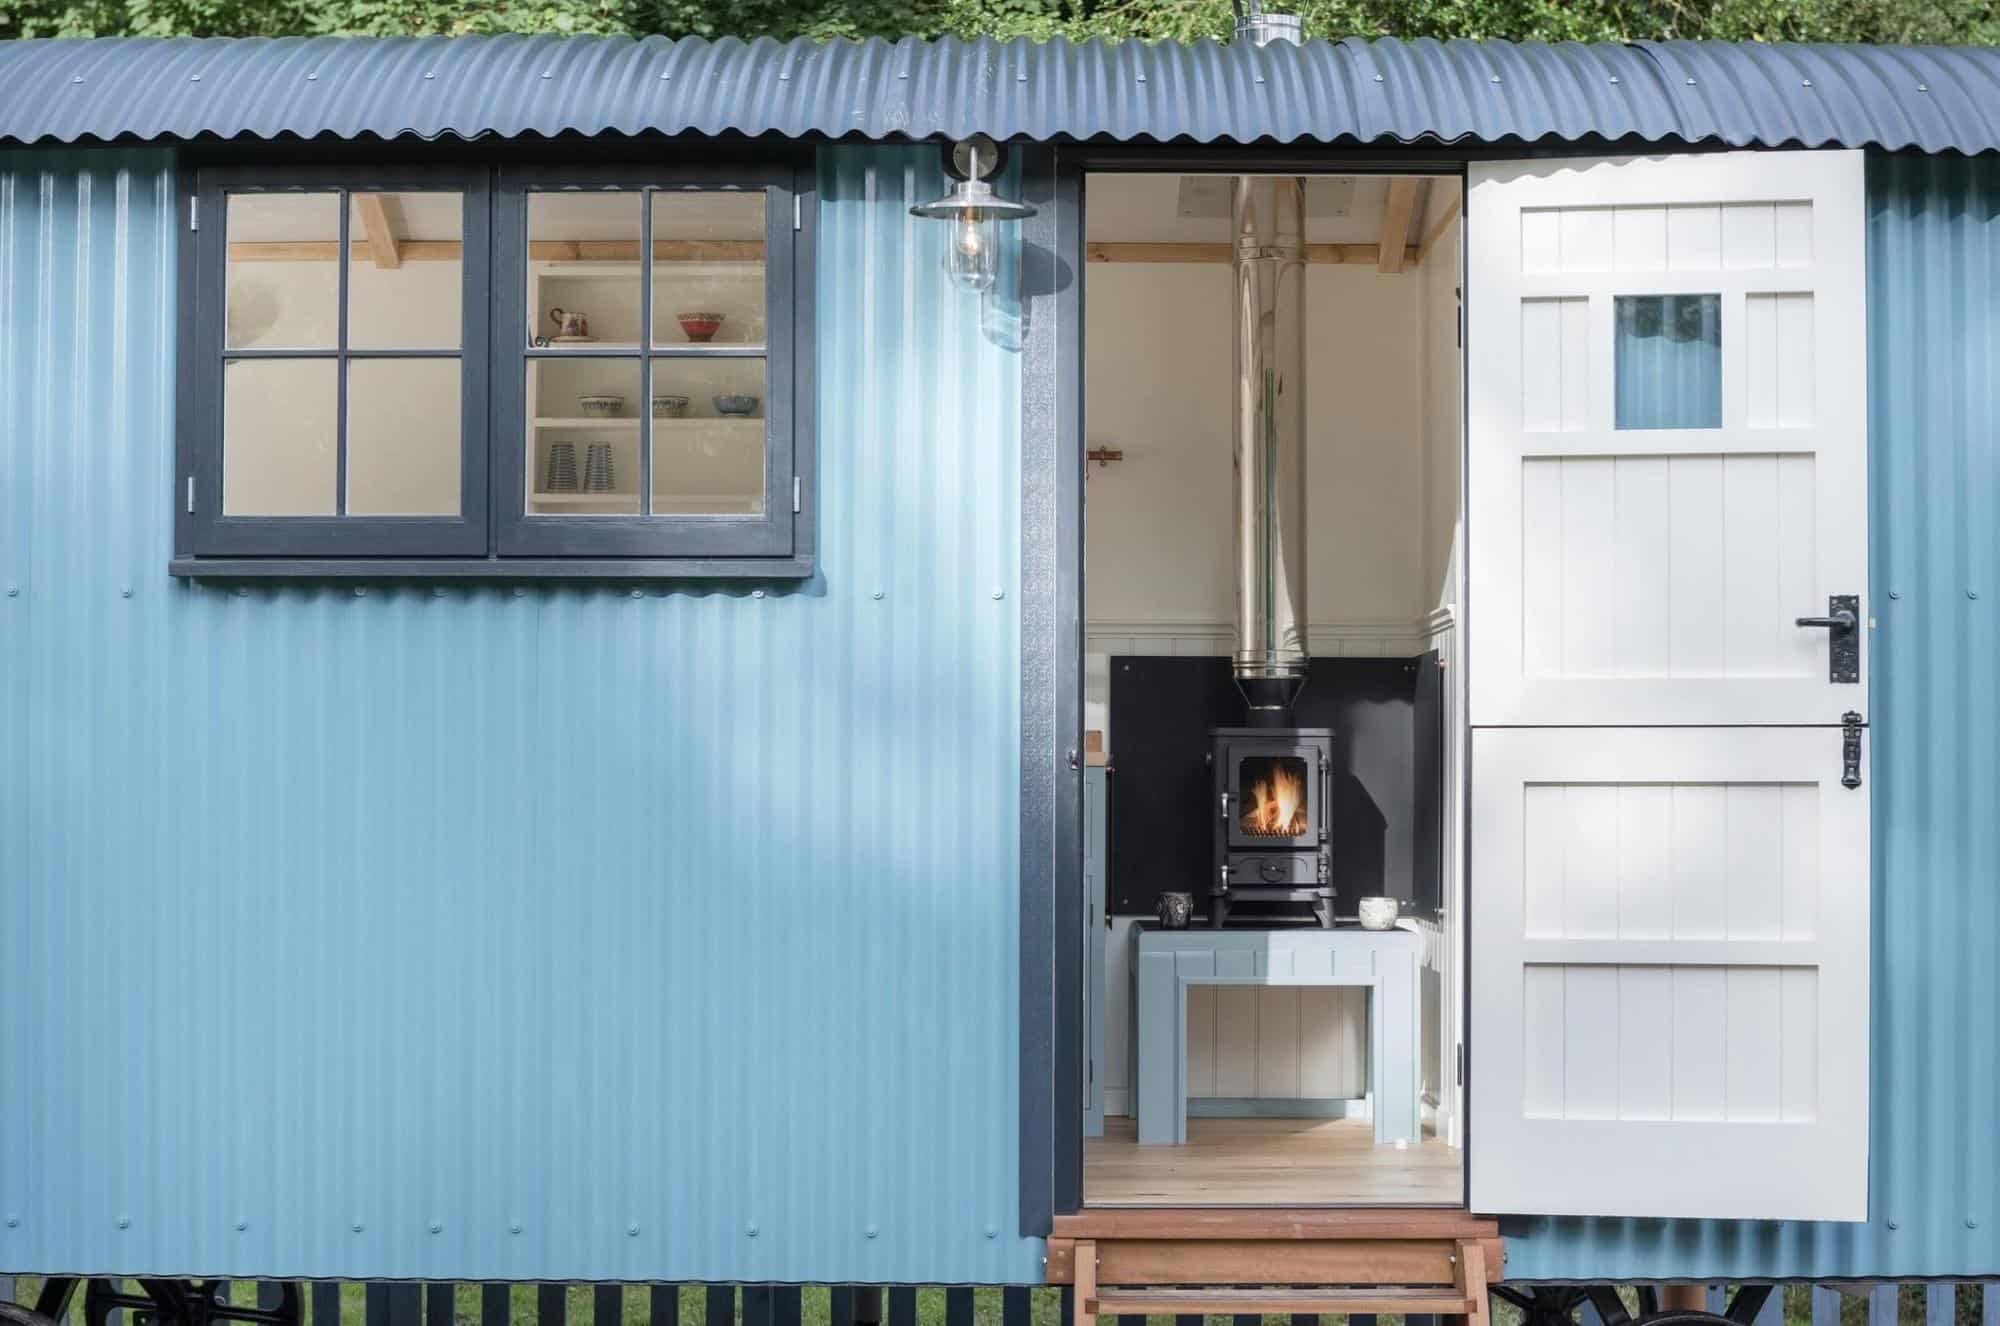 Small Wood Stove in a Shepherd's Hut